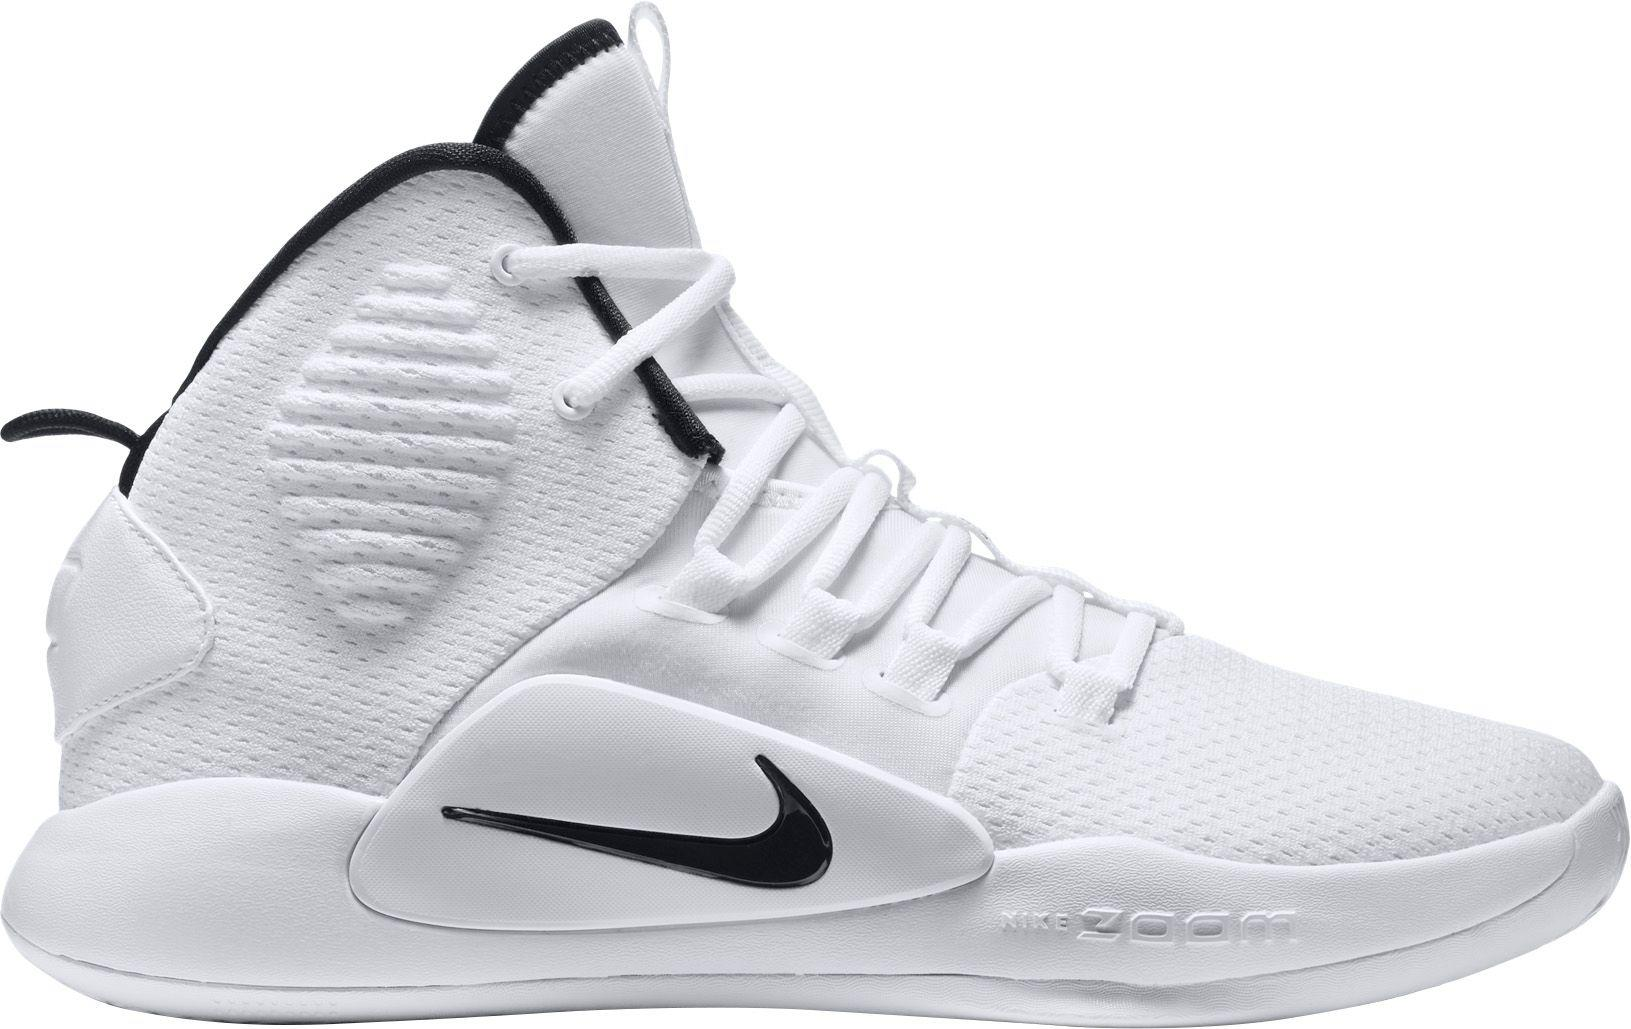 fc2cfd9a94c Nike Hyperdunk X Mid Tb Basketball Shoes in White for Men - Lyst